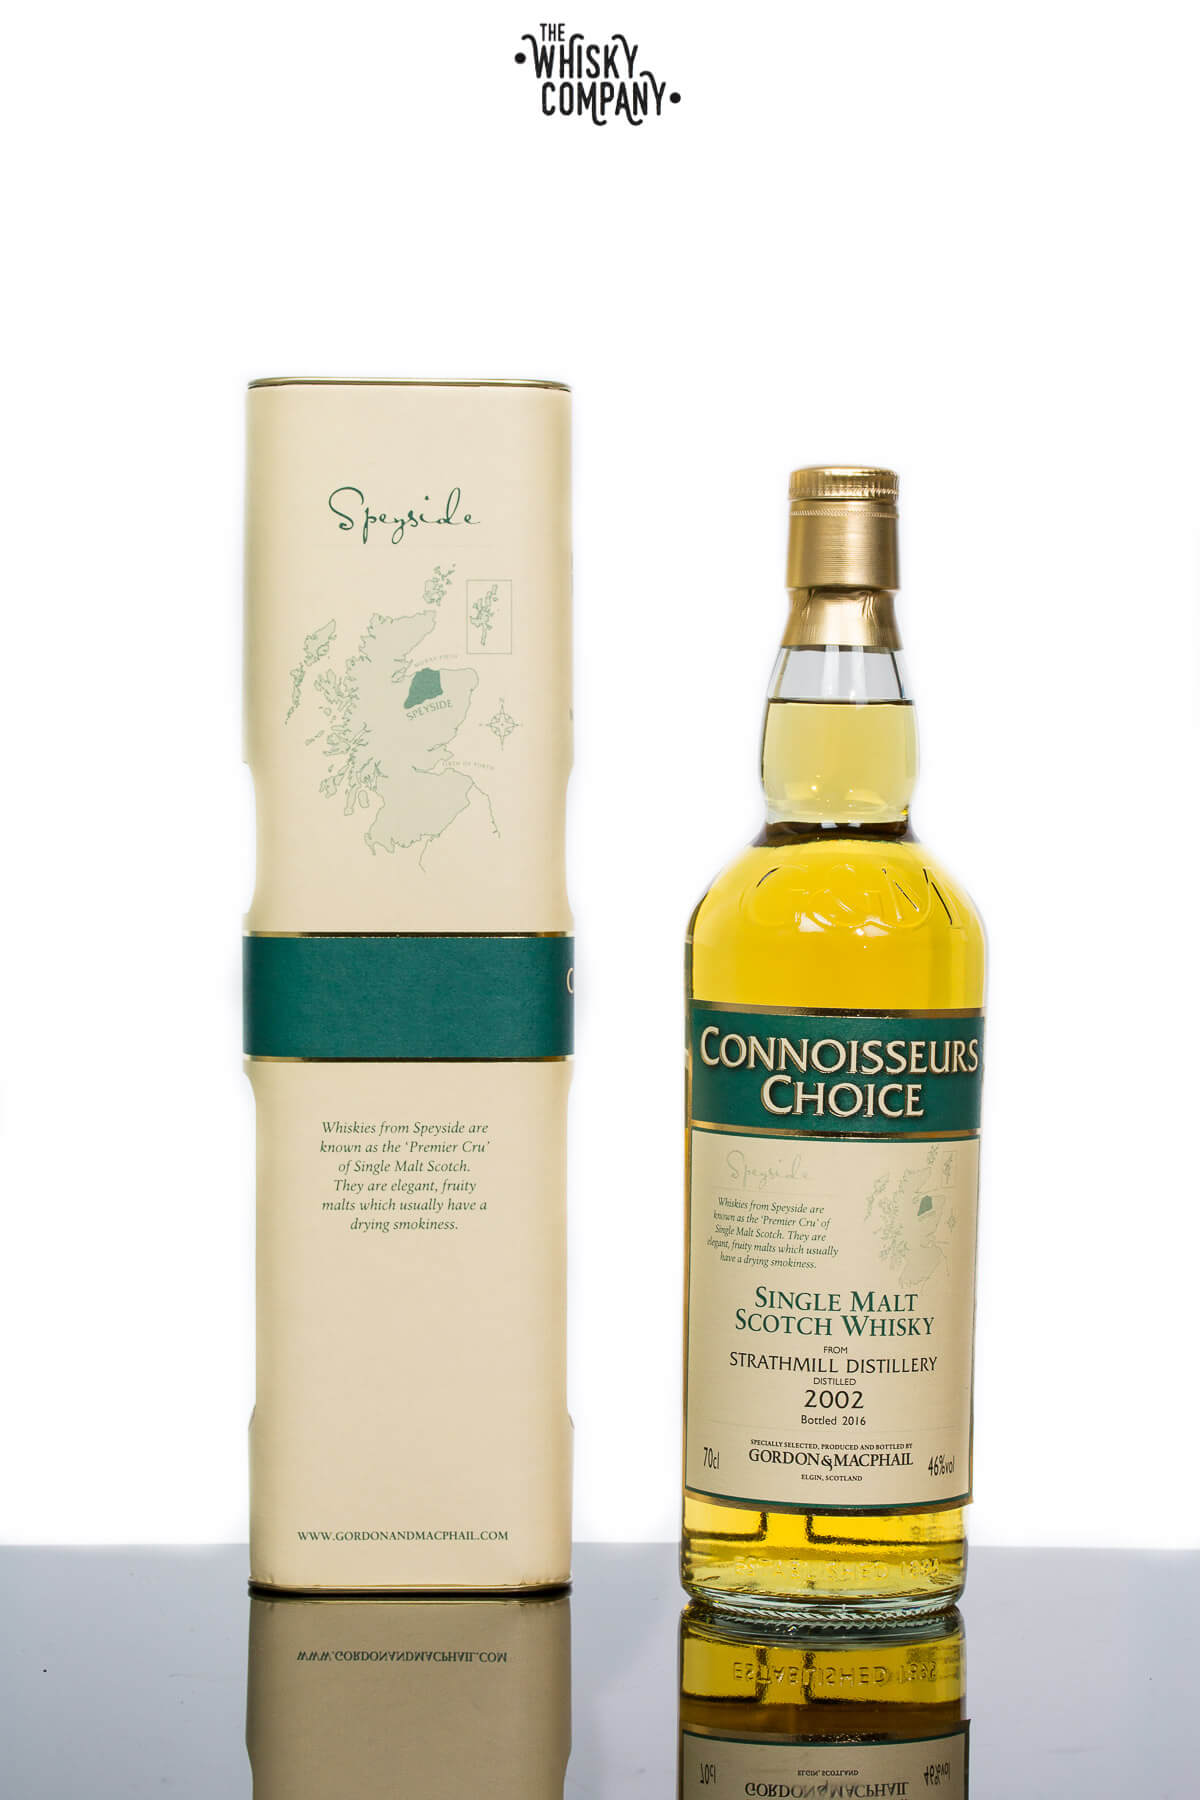 Gordon & MacPhail 2002 Strathmill Speyside Single Malt Scotch Whisky